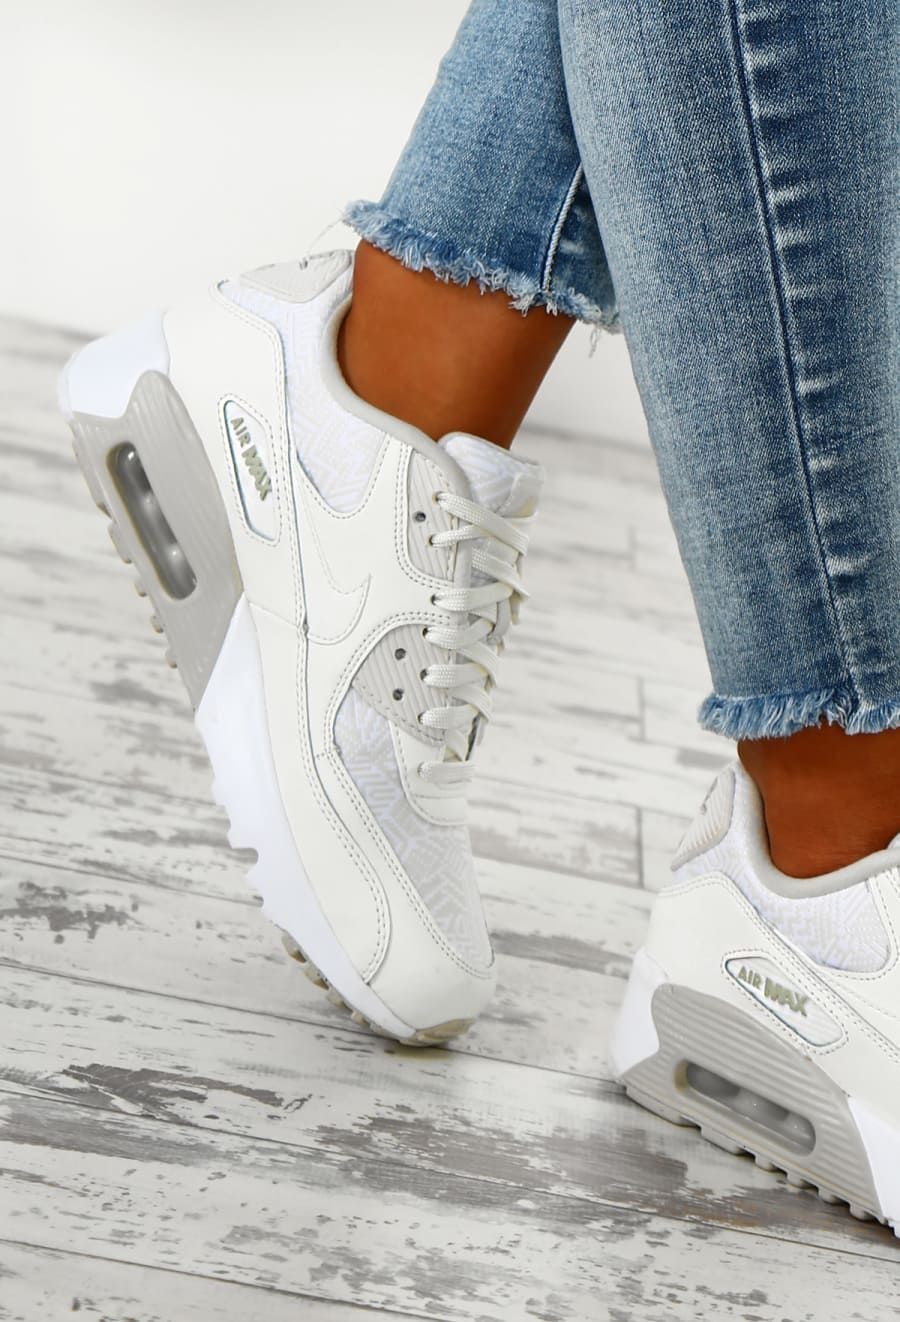 Nike Air Max 90 White Trainers Https Twitter Com Gmlinglin Status 978435341462904832 Nike Air Max 90 White Stylish Sneakers Sneakers Fashion